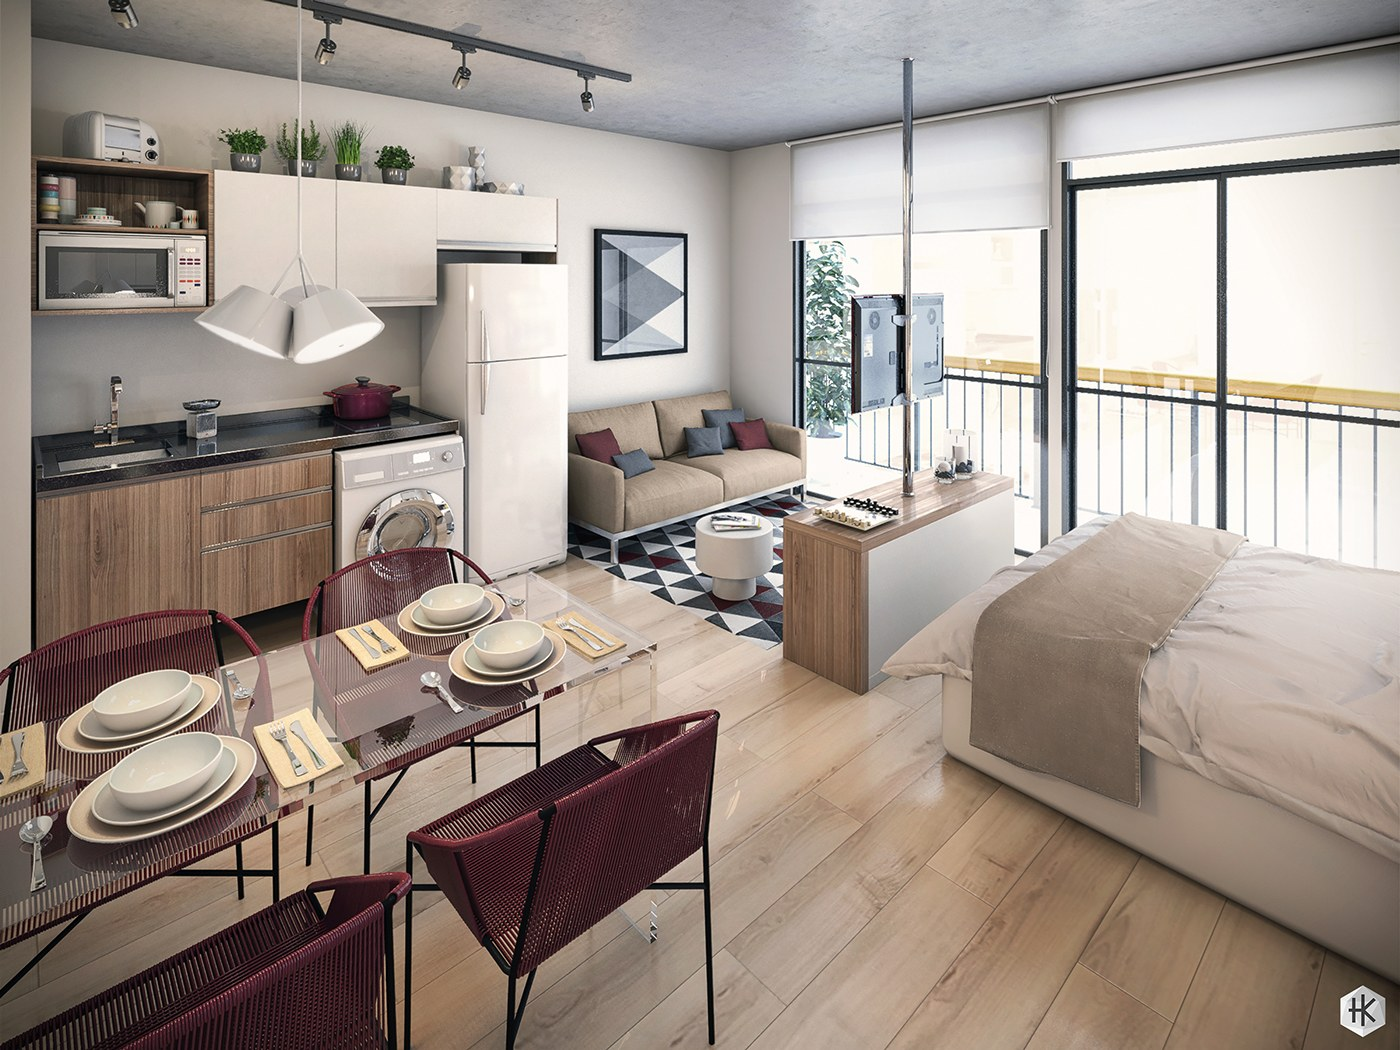 Studio Apartment Designs 5 Small Studio Apartments With Beautiful Design